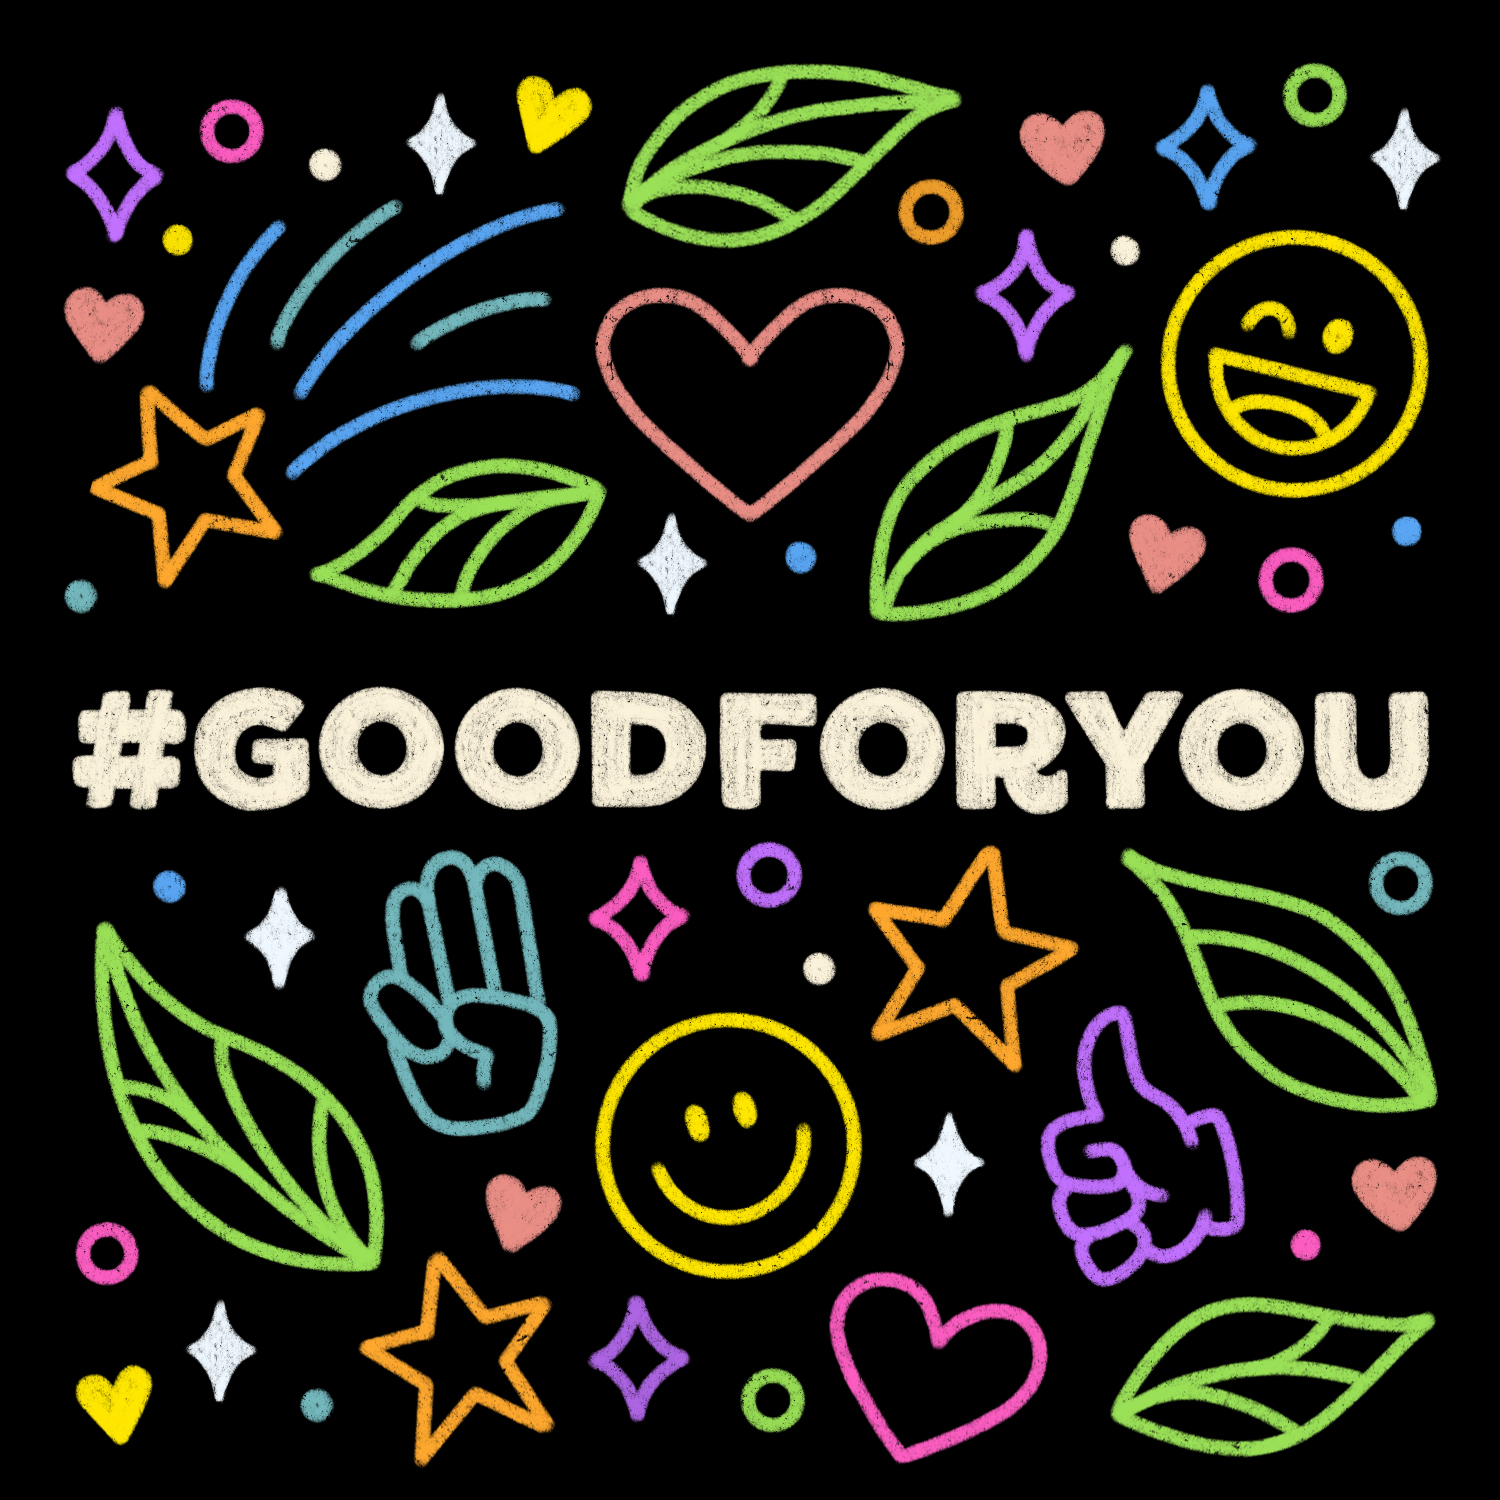 goodforyou-square-colour-logo-with-pattern-jpg